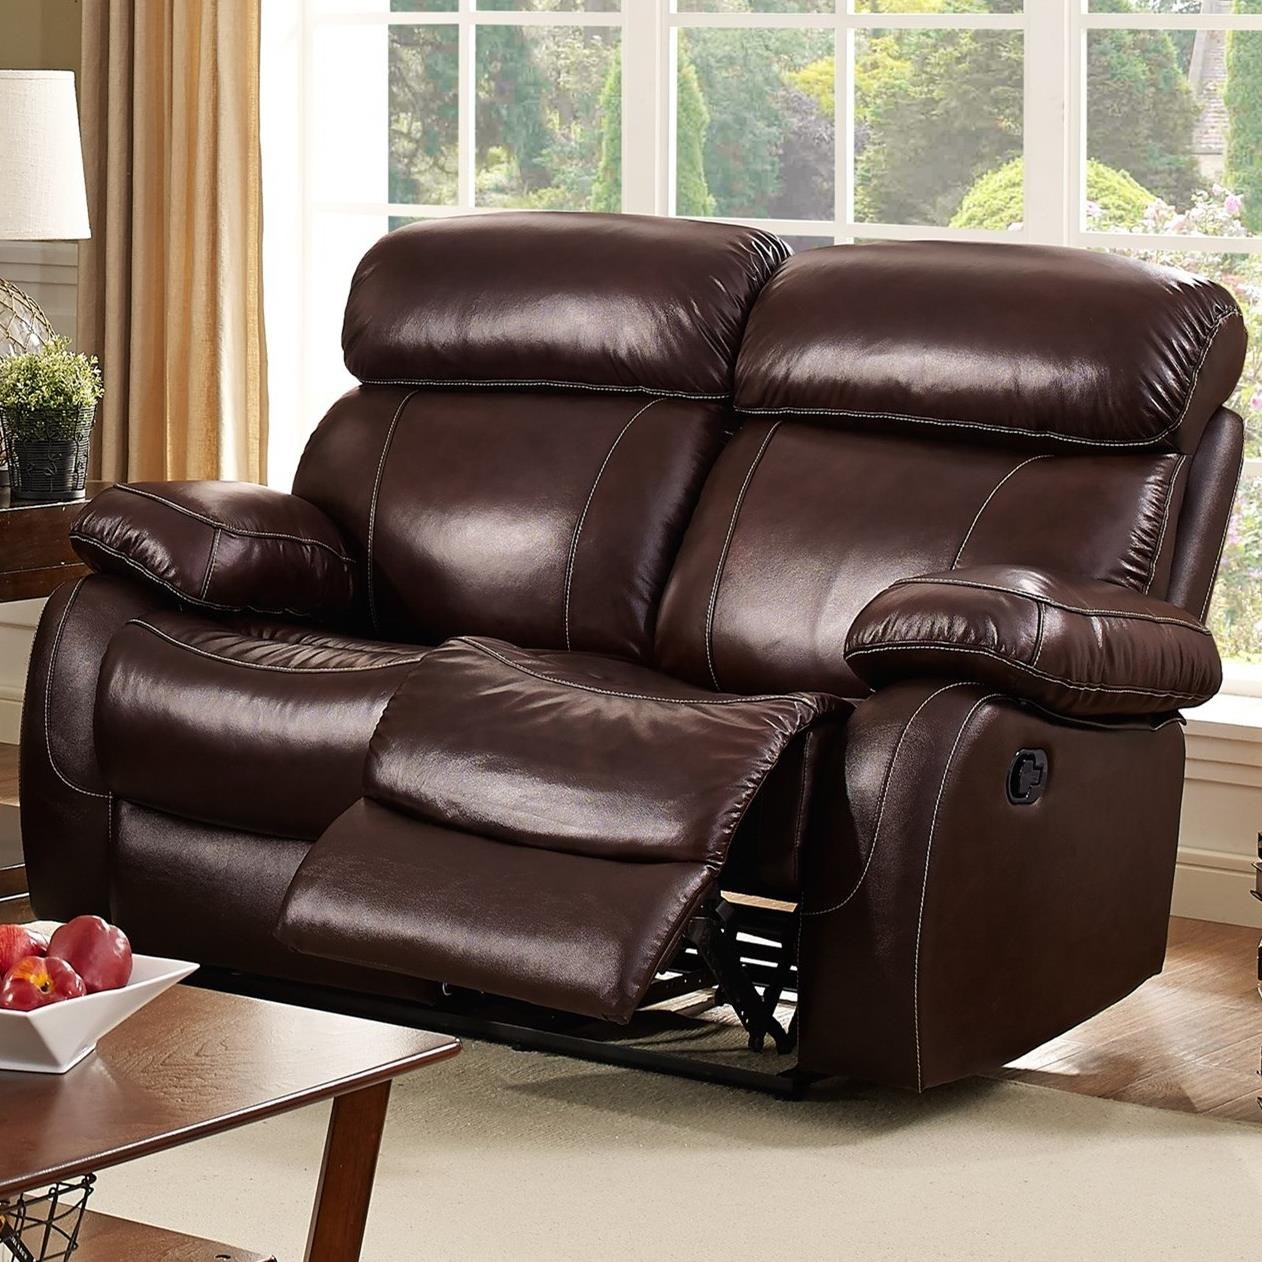 New Classic Dante Power Reclining Loveseat - Item Number: L2041-20P-BBN